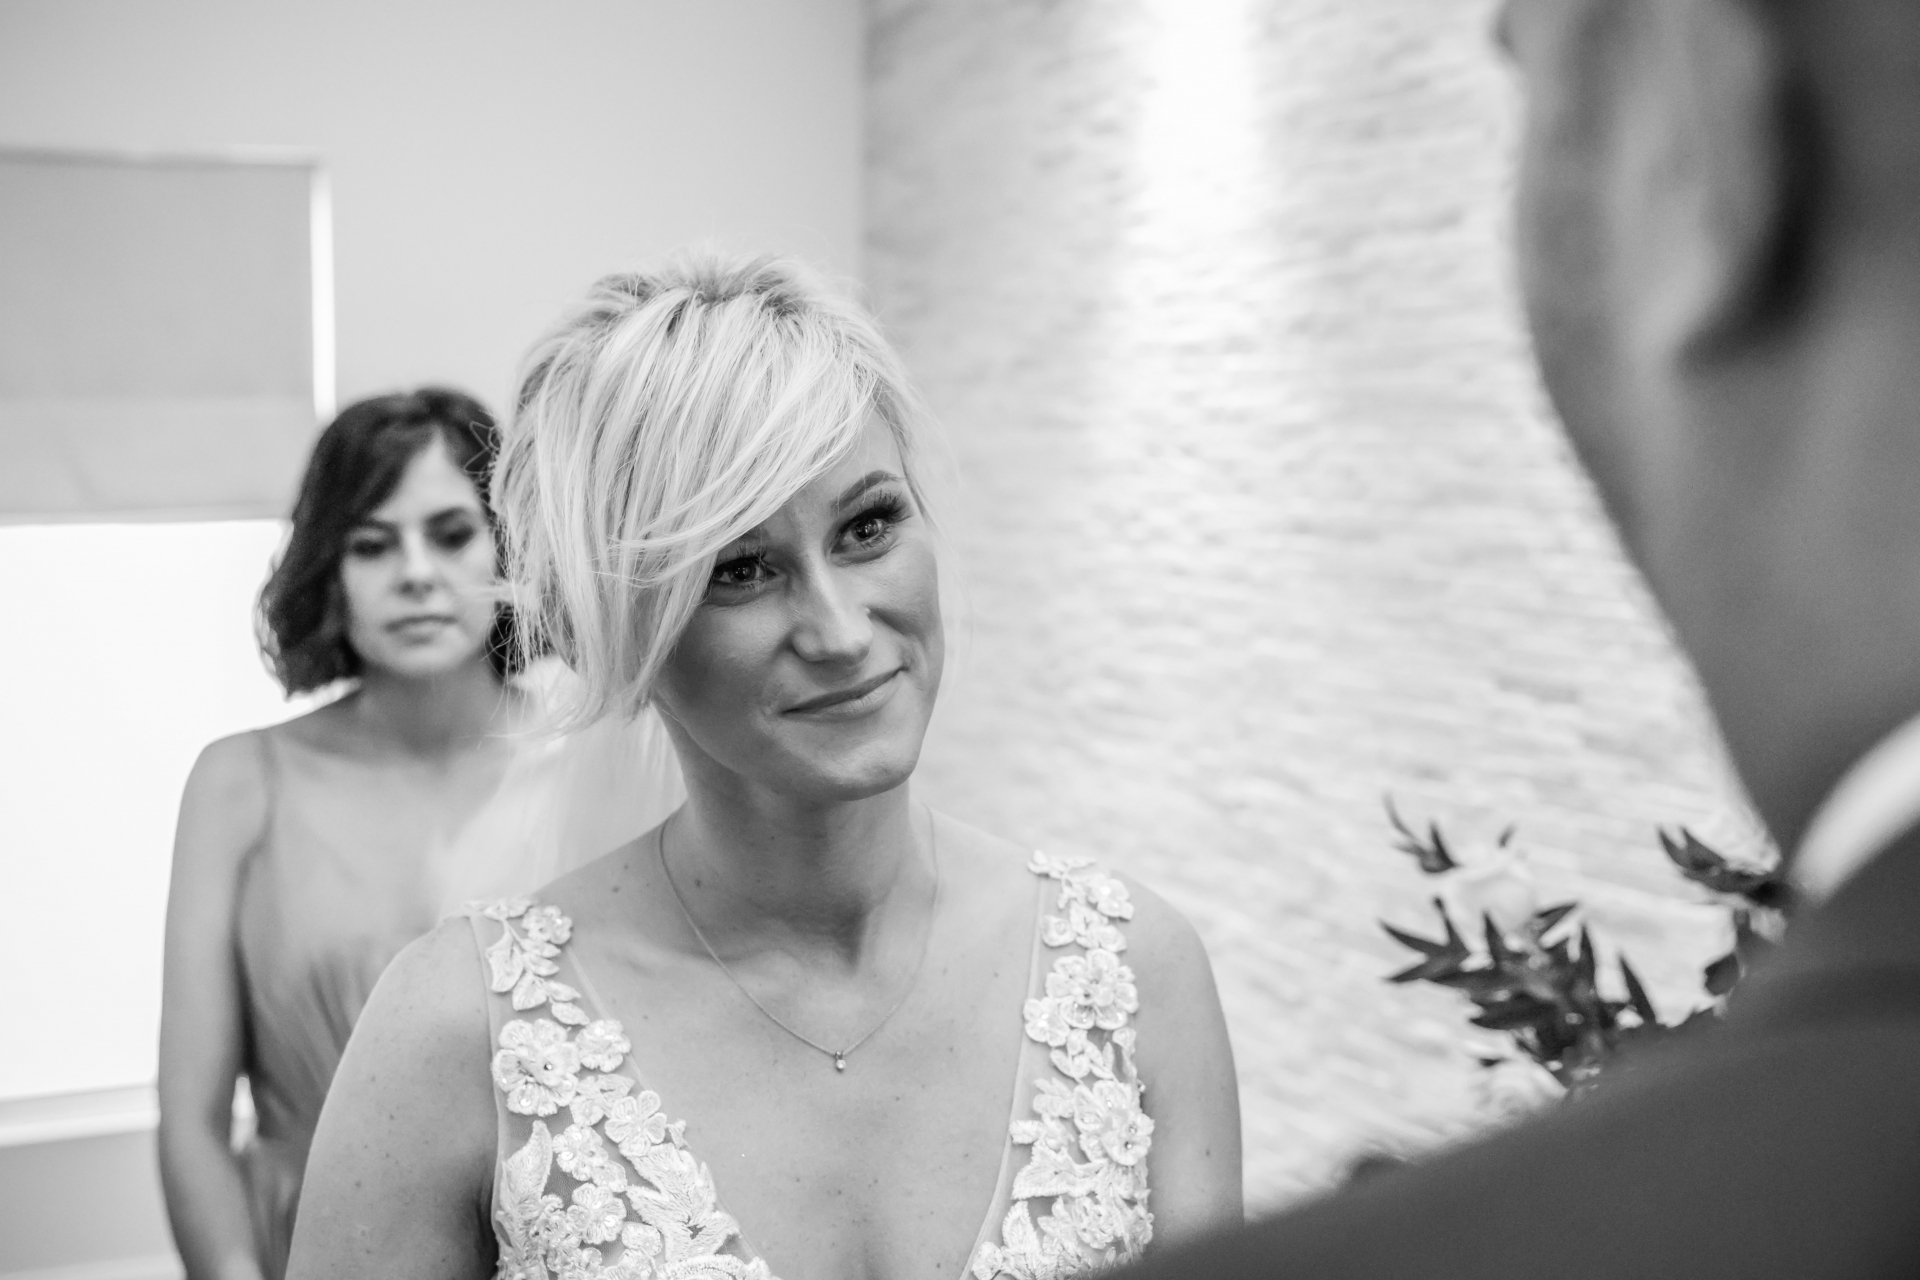 The Toronto Bride - Indoor Elopement Ceremony Picture | The way the bride looks at the groom says it all